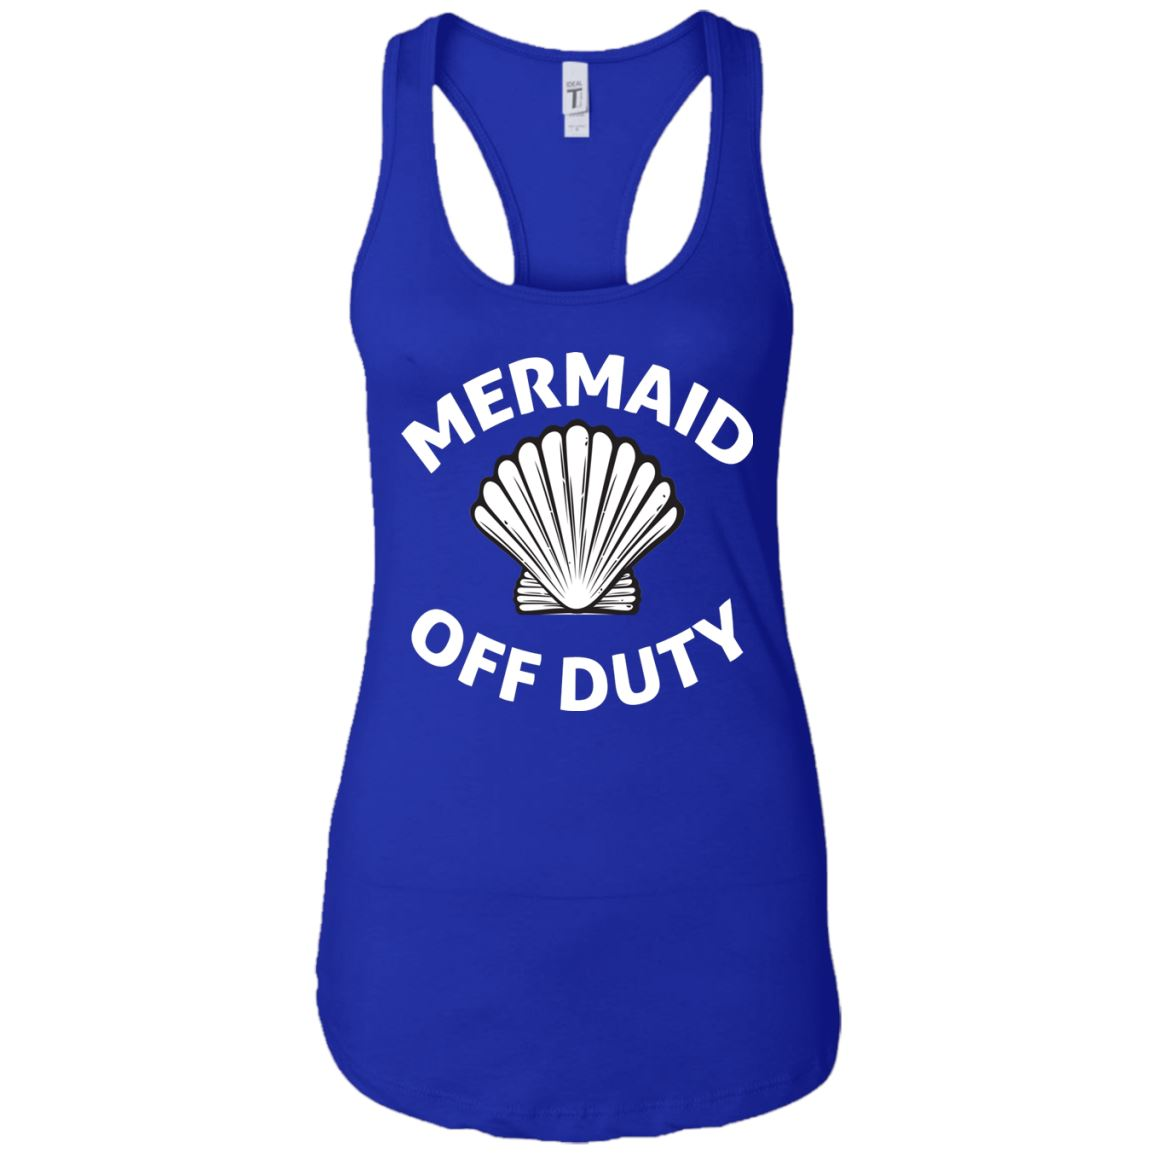 Mermaid Off Duty Ladies Racerback Tank Mermaid Apparel Royal X-Small